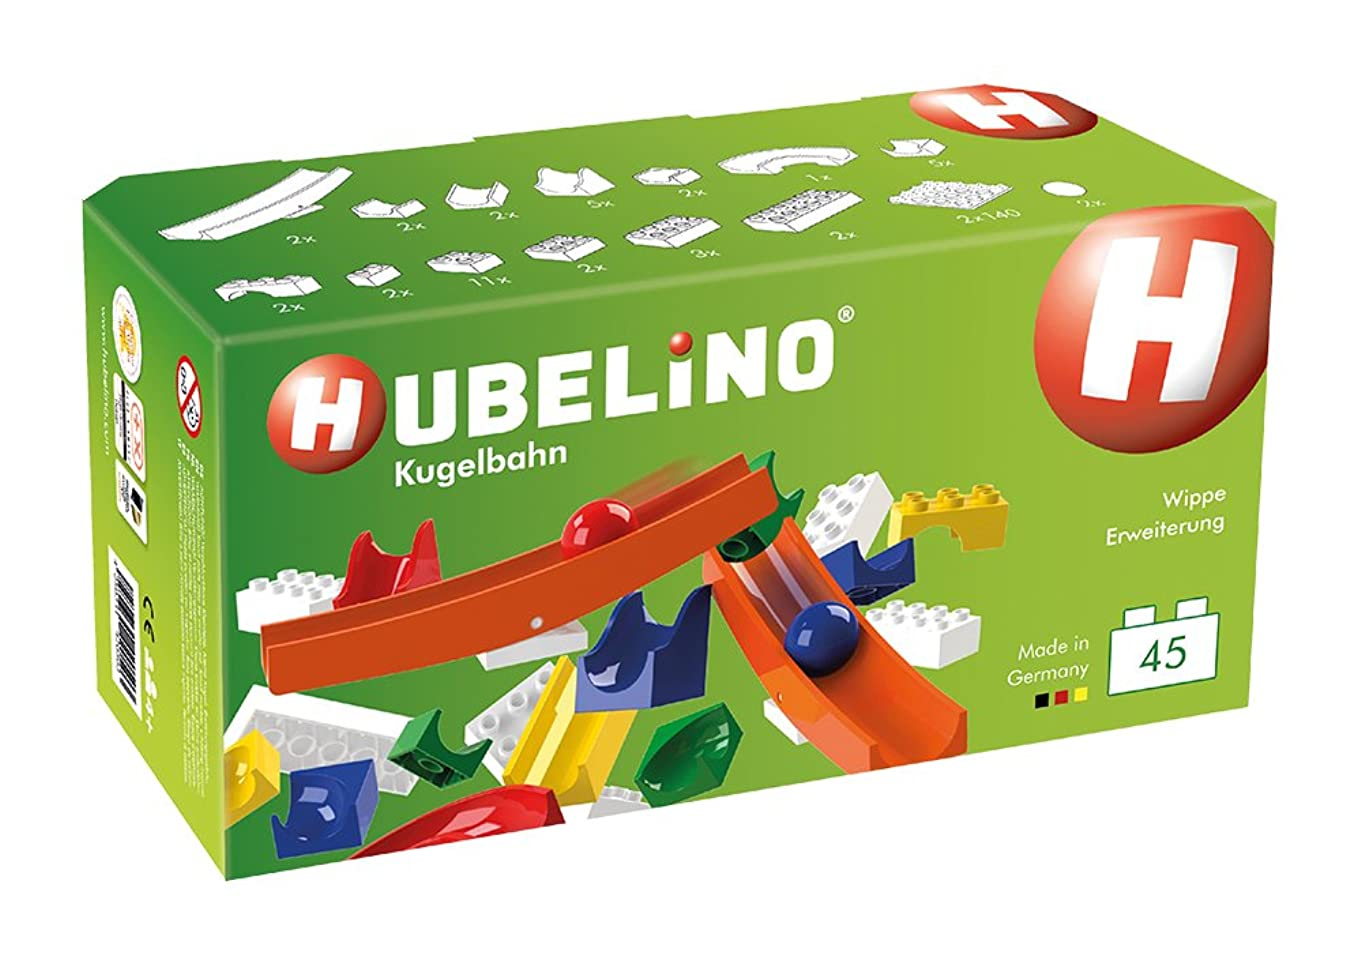 Hubelino Marble Run - 45-Piece See-Saw Expansion Set - The Original! Made in Germany! - Certified and Award-Winning Marble Run - 100% Compatible with Duplo